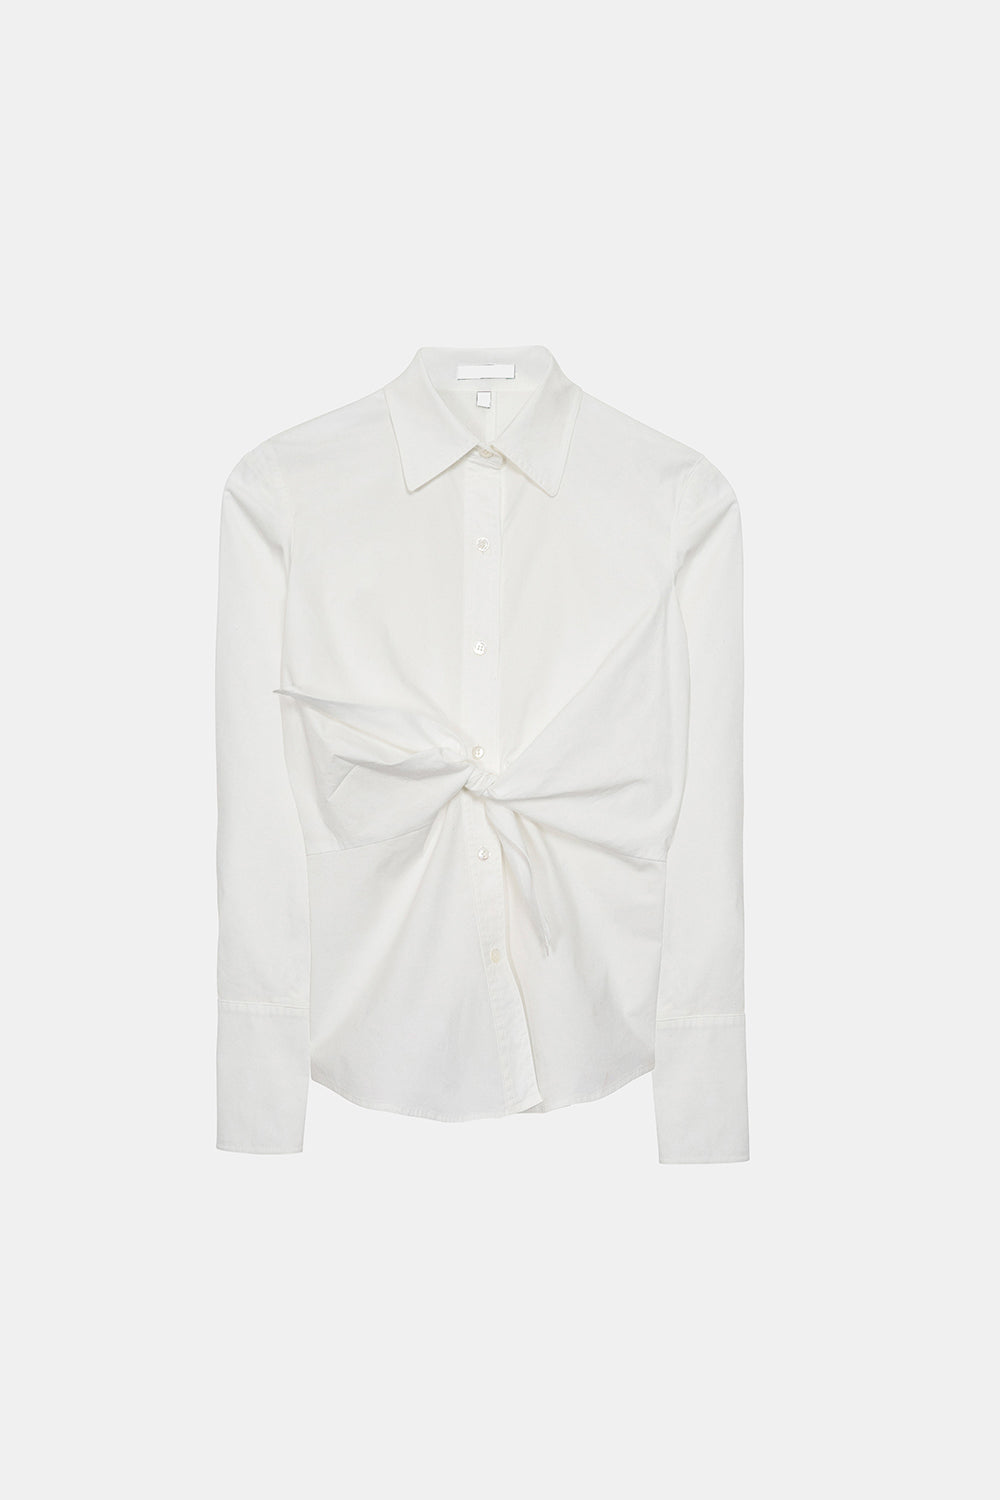 Anne Klein Vintage White Shirt